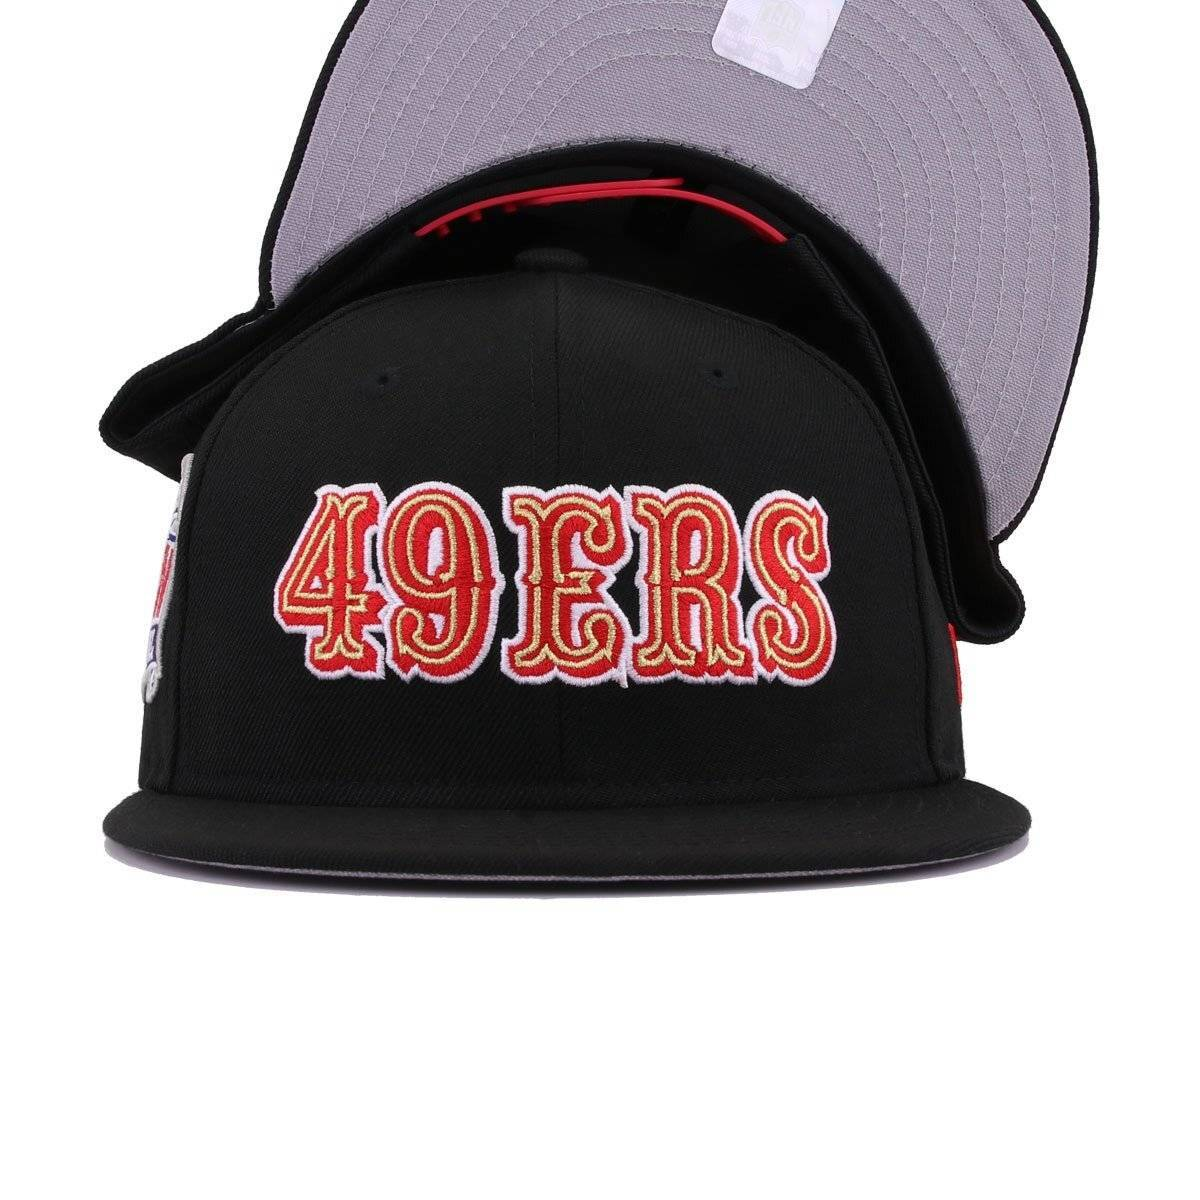 San Francisco 49ers Black Super Bowl 24 New Era 9Fifty Snapback